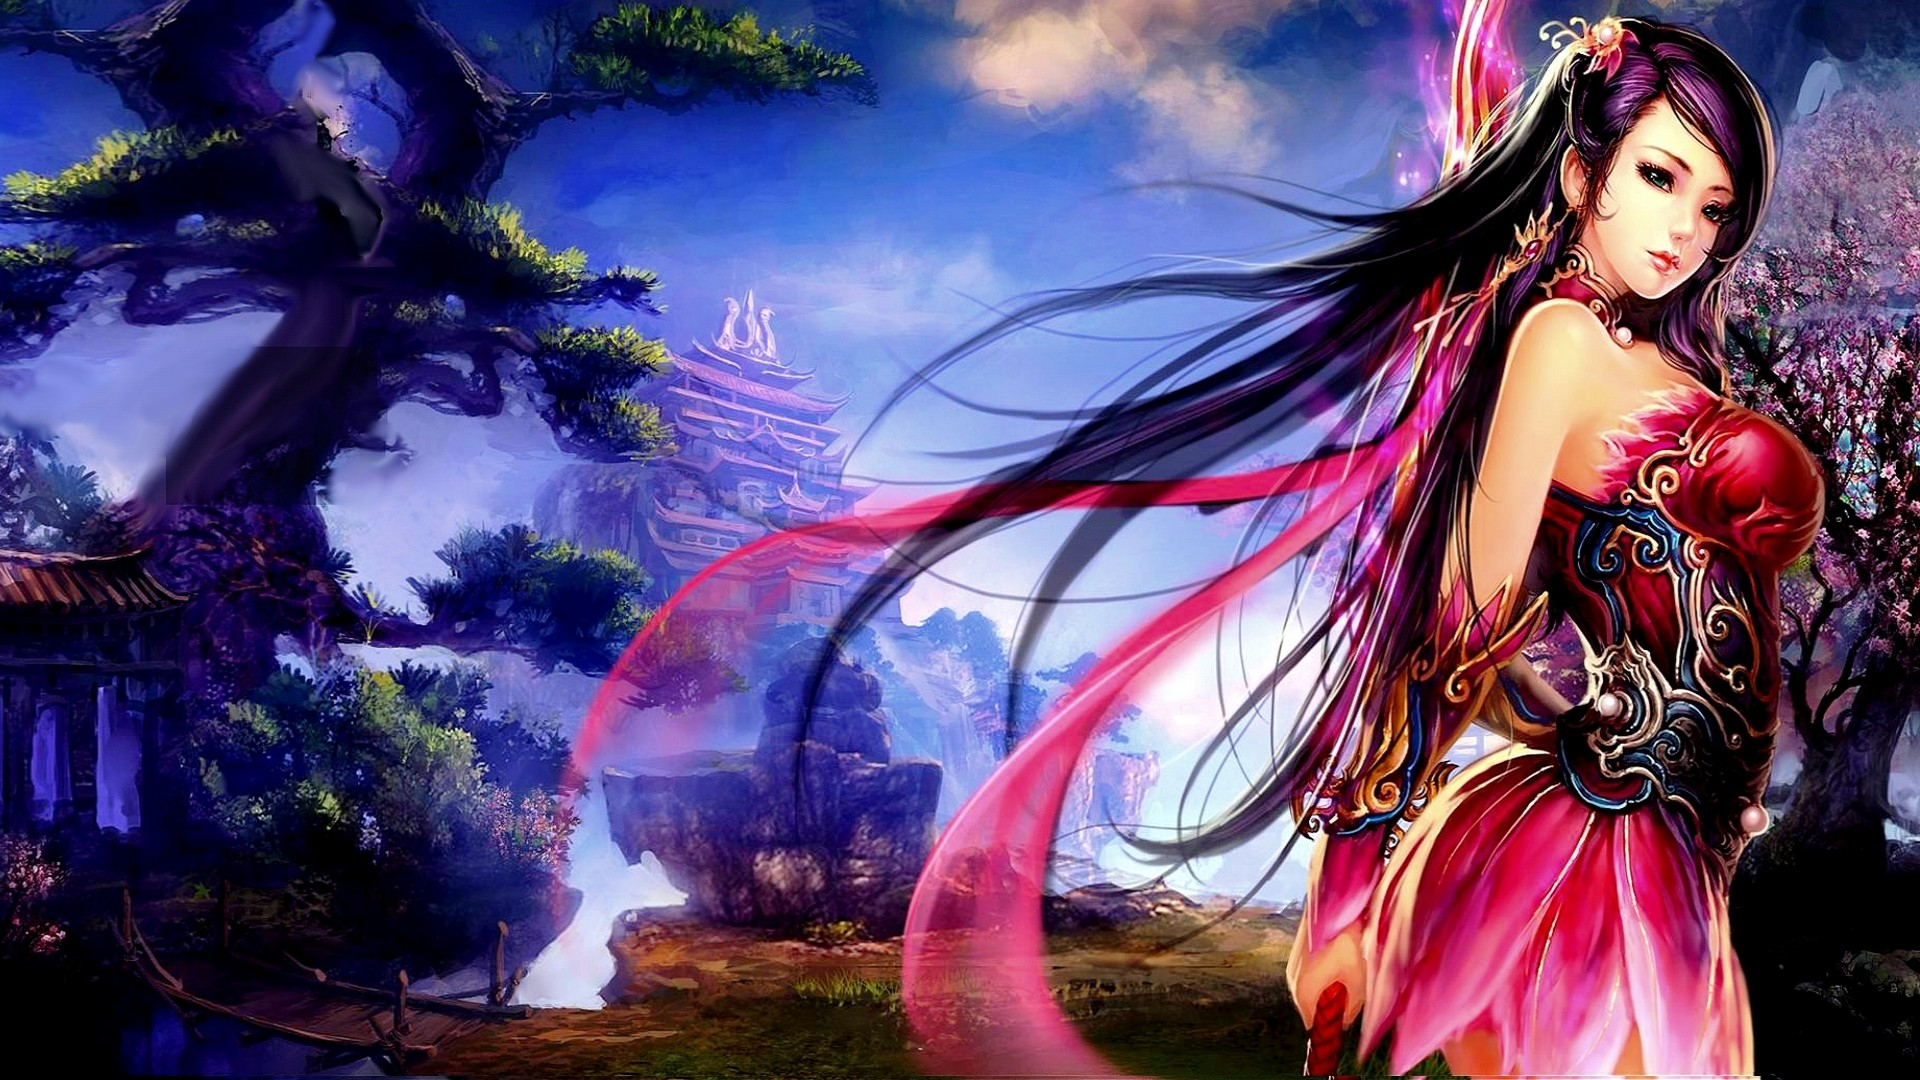 Anime Inspired Hd Fantasy Wallpapers For Your Collection: Fantasy Princess Wallpaper (78+ Images